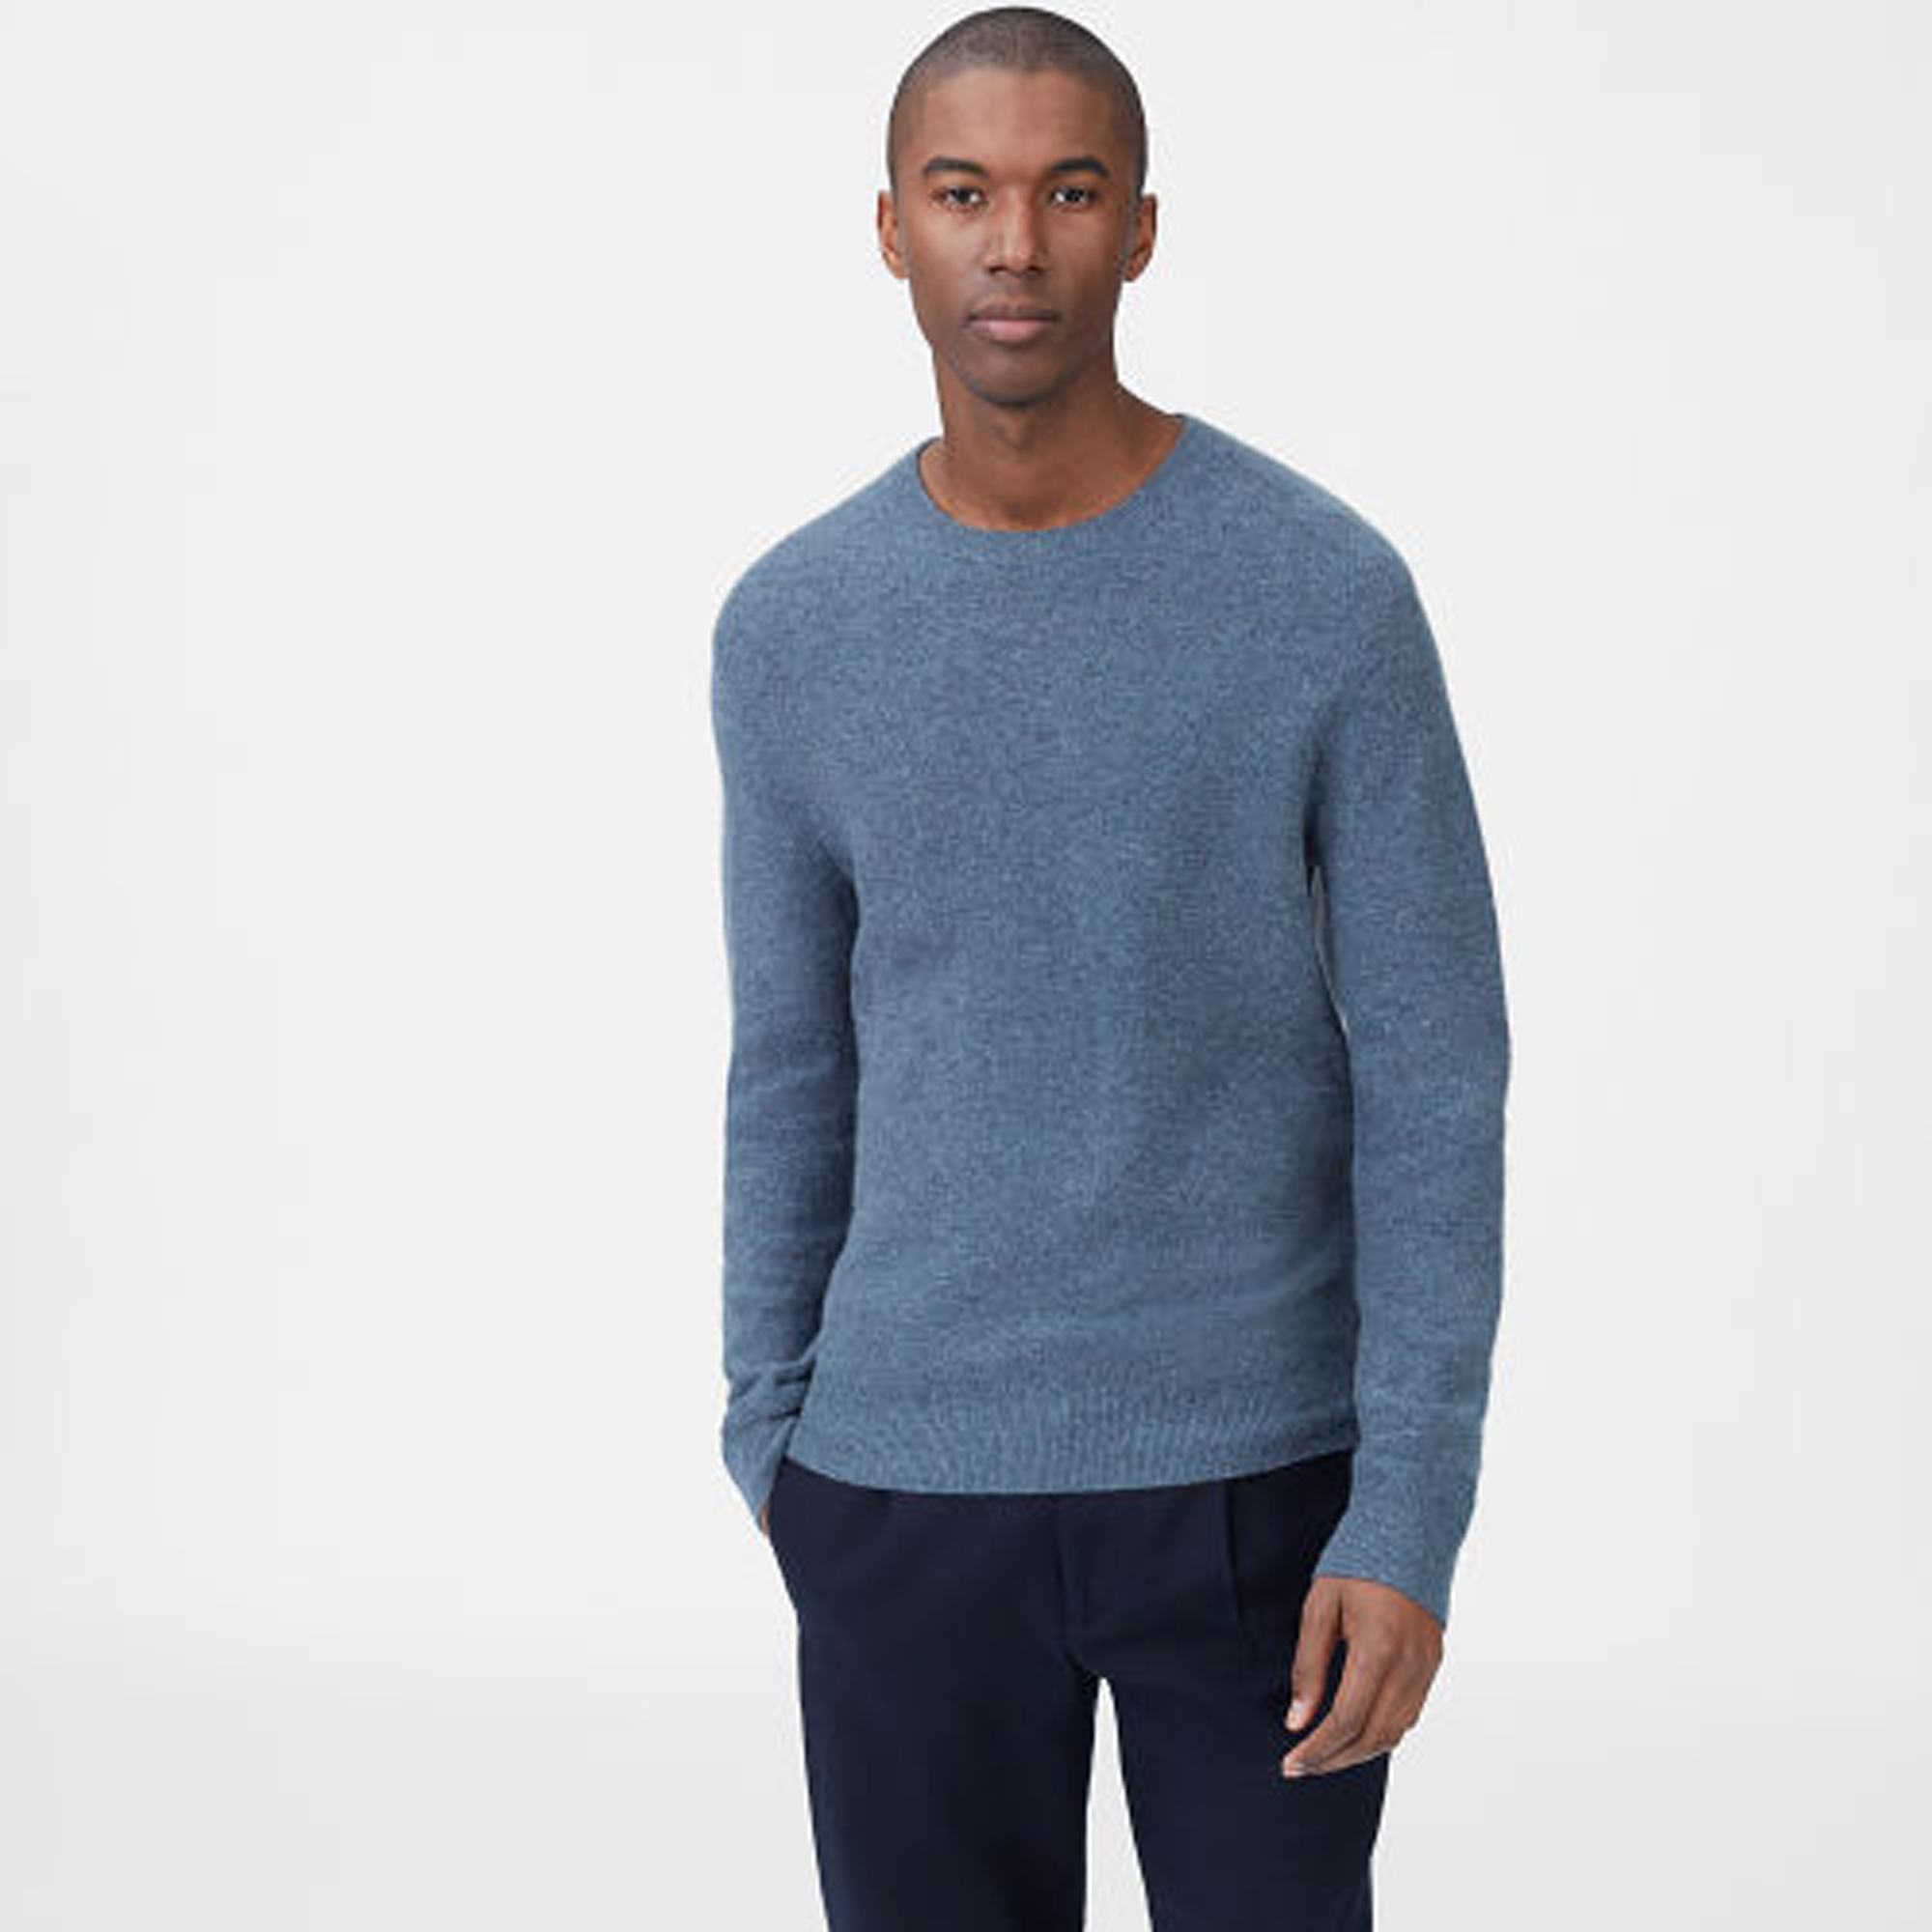 Cashmere Links Crew Sweater  HK$3,090